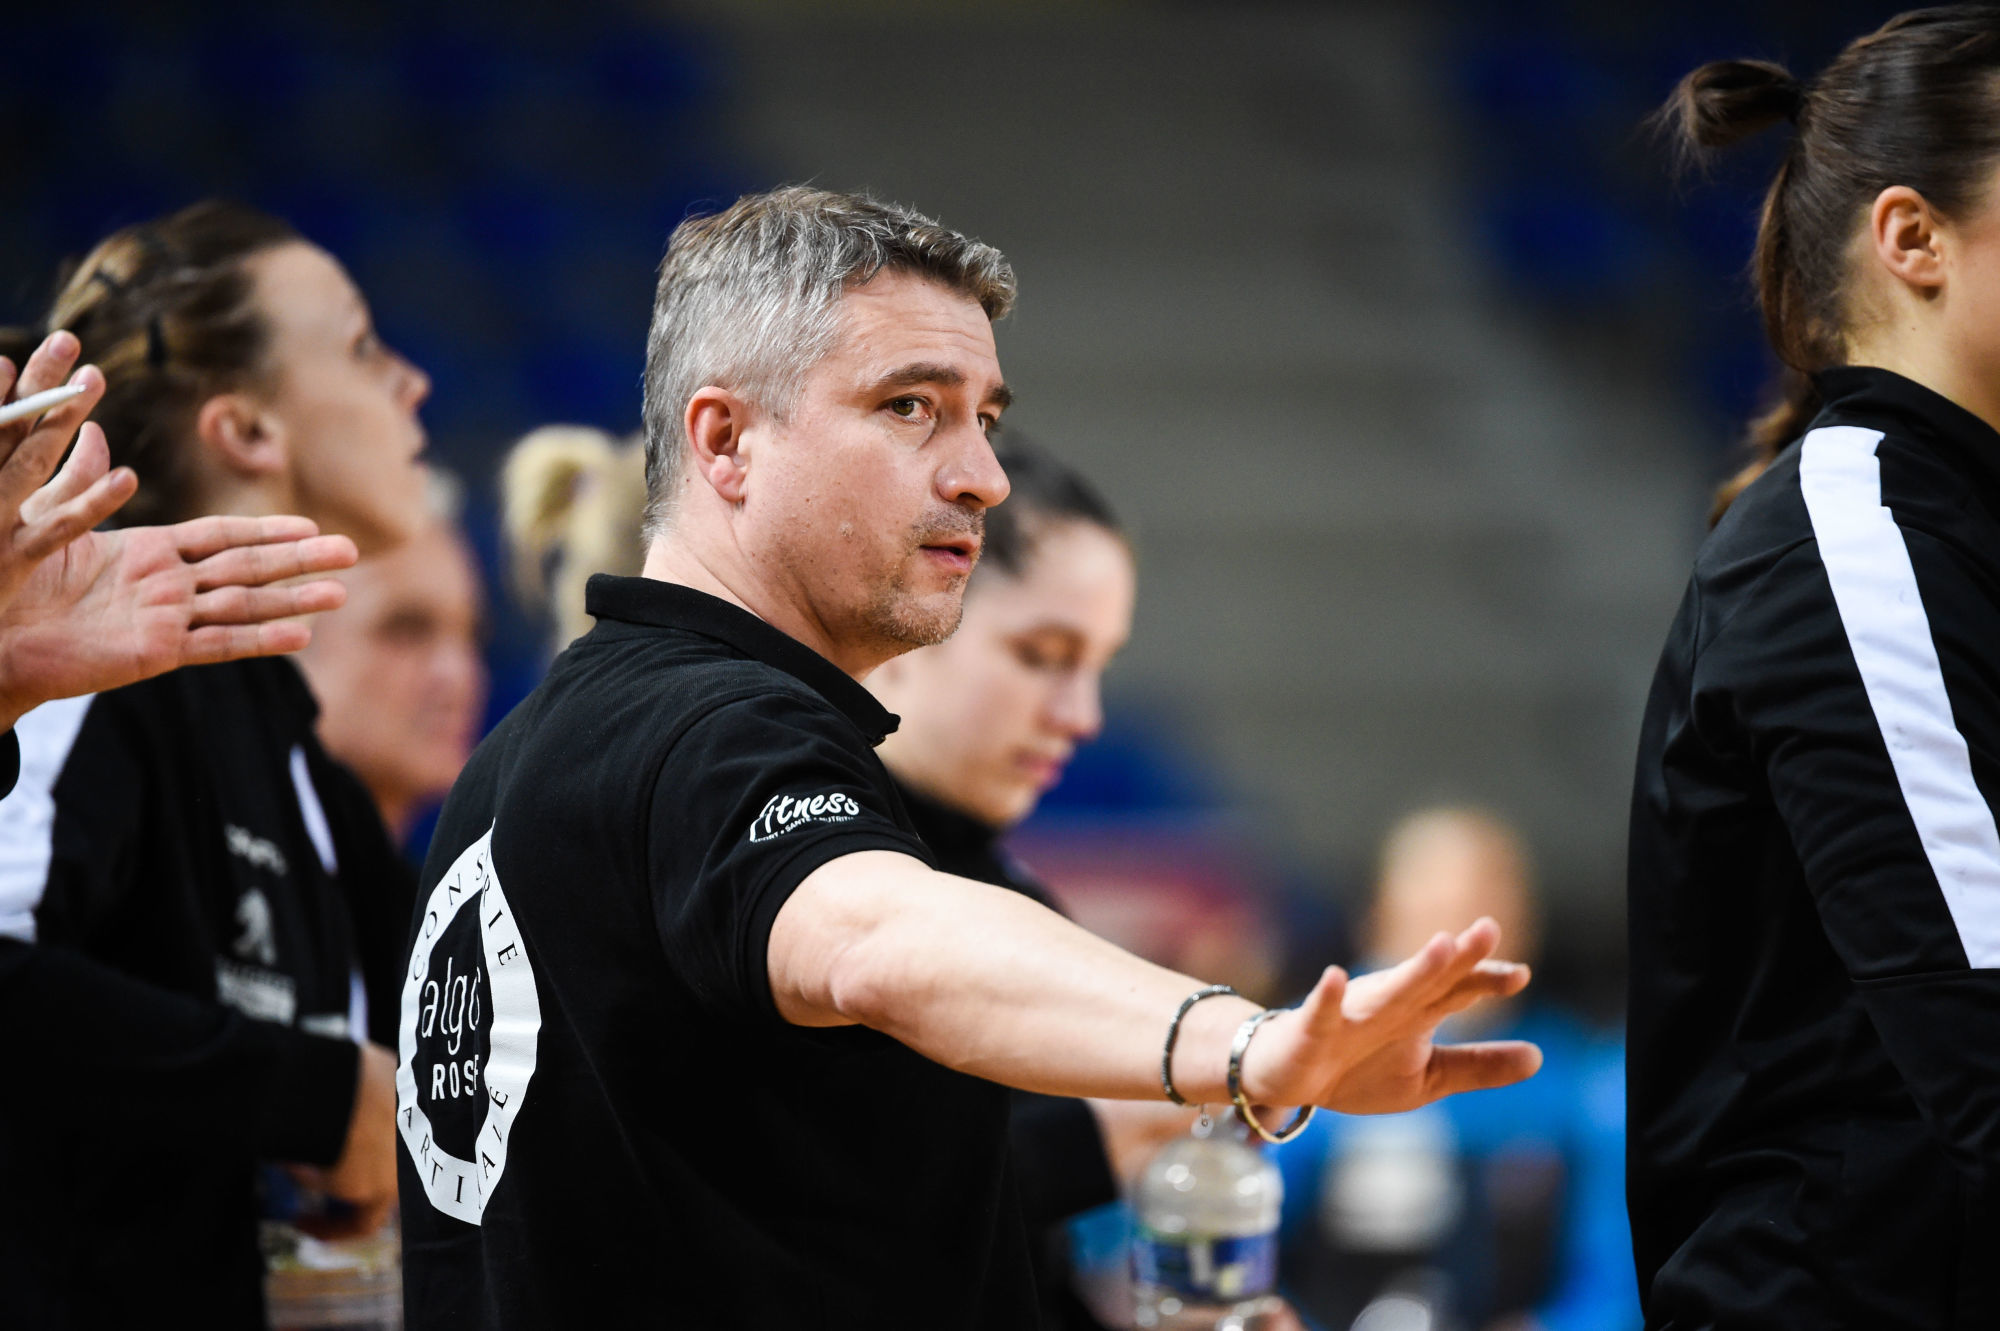 Laurent BEZEAU head coach of Brest during the LFH - Ligue Butagaz Energie match between Metz and Brest on March 28, 2021 in Metz, France. (Photo by Sebastien Bozon/Icon Sport) - Laurent BEZEAU - Palais Omnisports Les Arenes Metz - Metz (France)